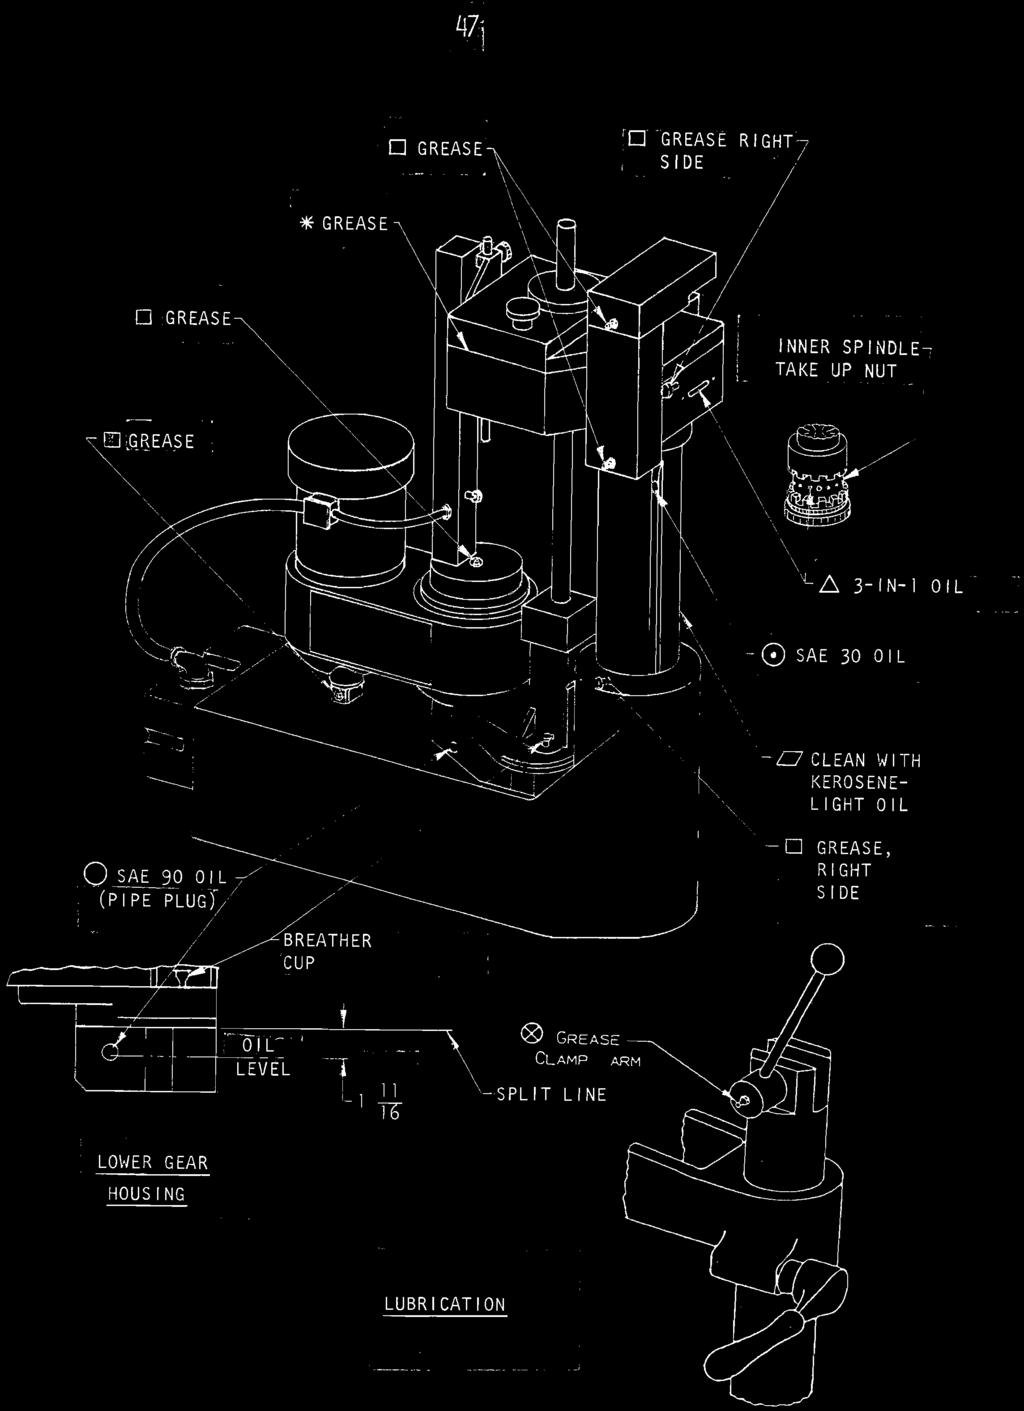 Froiitiiefl Fa 48 Ffiintgi Machine Serial Number Feb 19bo Boring Bendix Ec 30 Wiring Diagram 47i Ifl Grease R I Slde E Nner